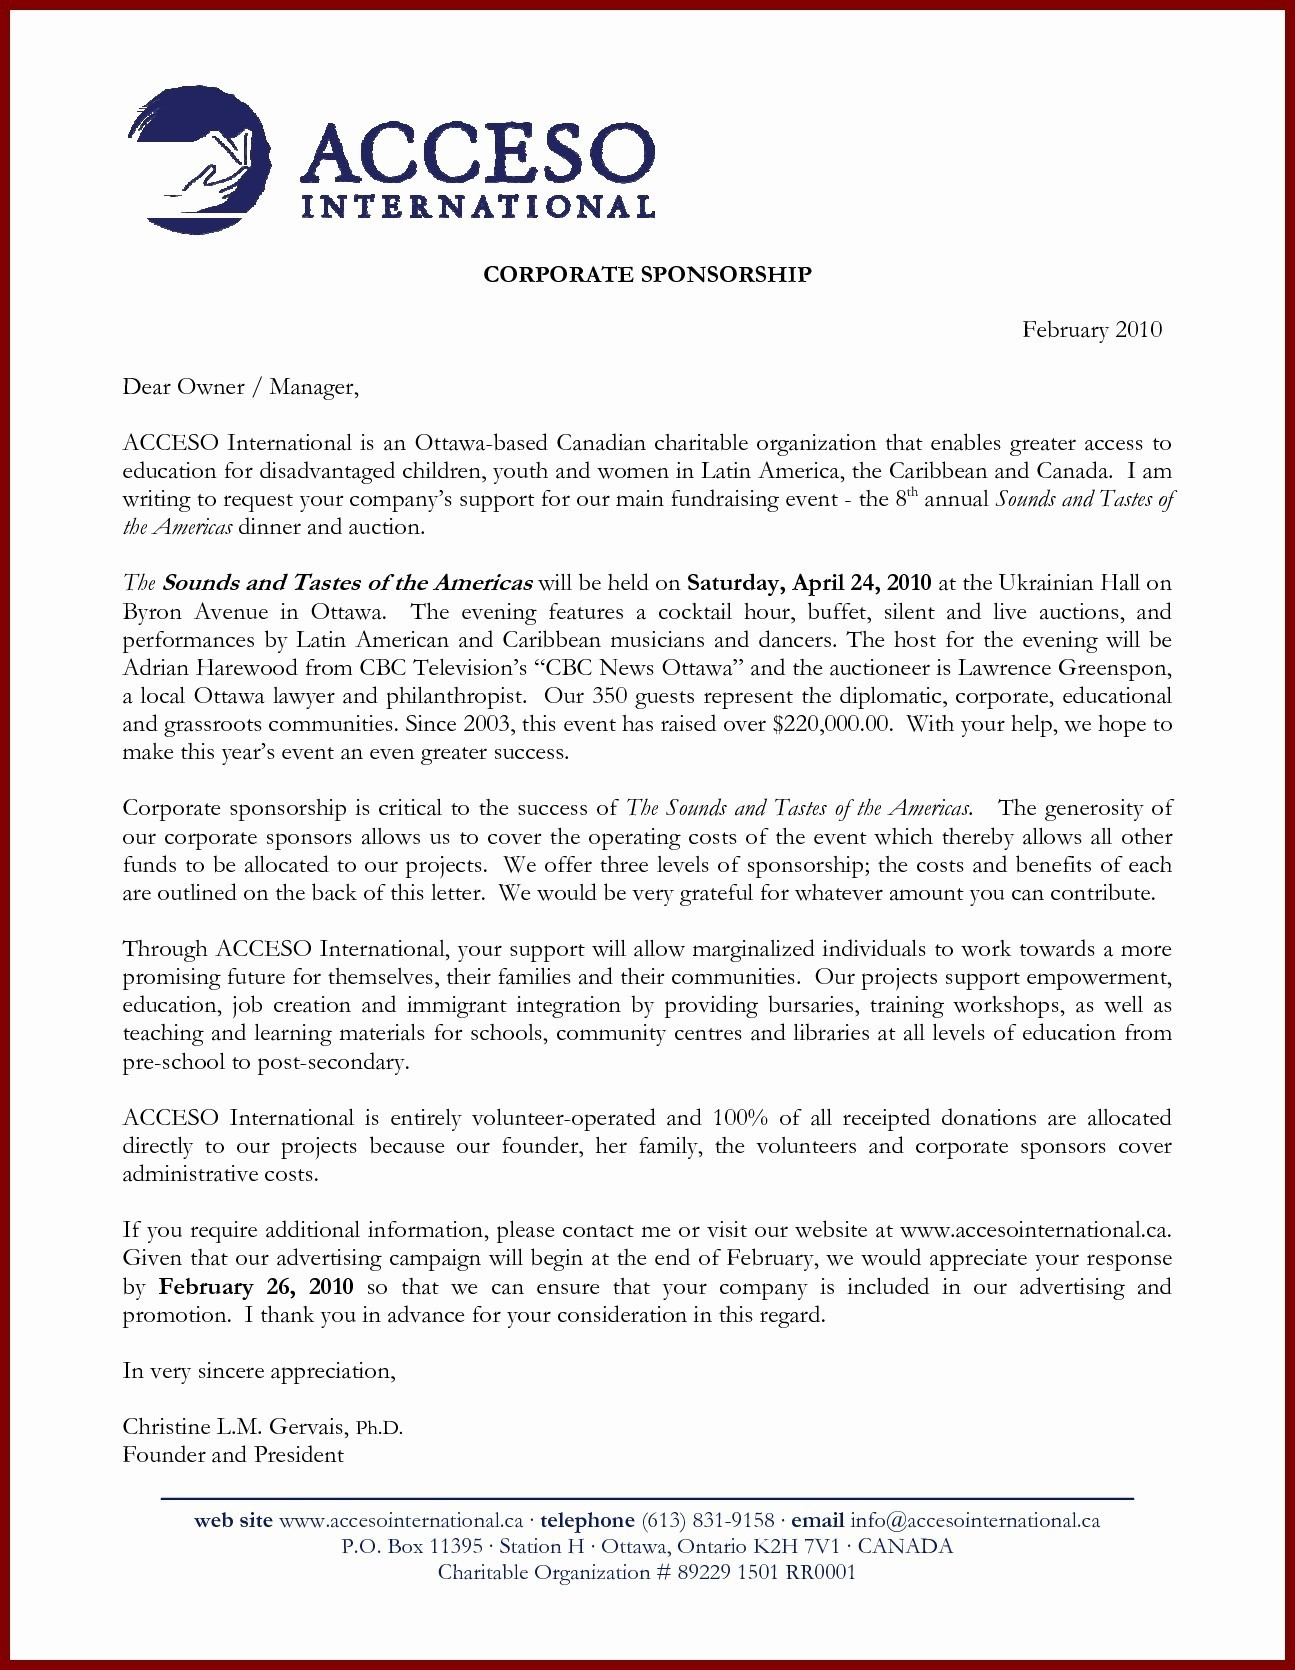 Event Sponsorship Letter Template - Sample Certificate Beauty Pageant Copy Free Sponsorship Letter